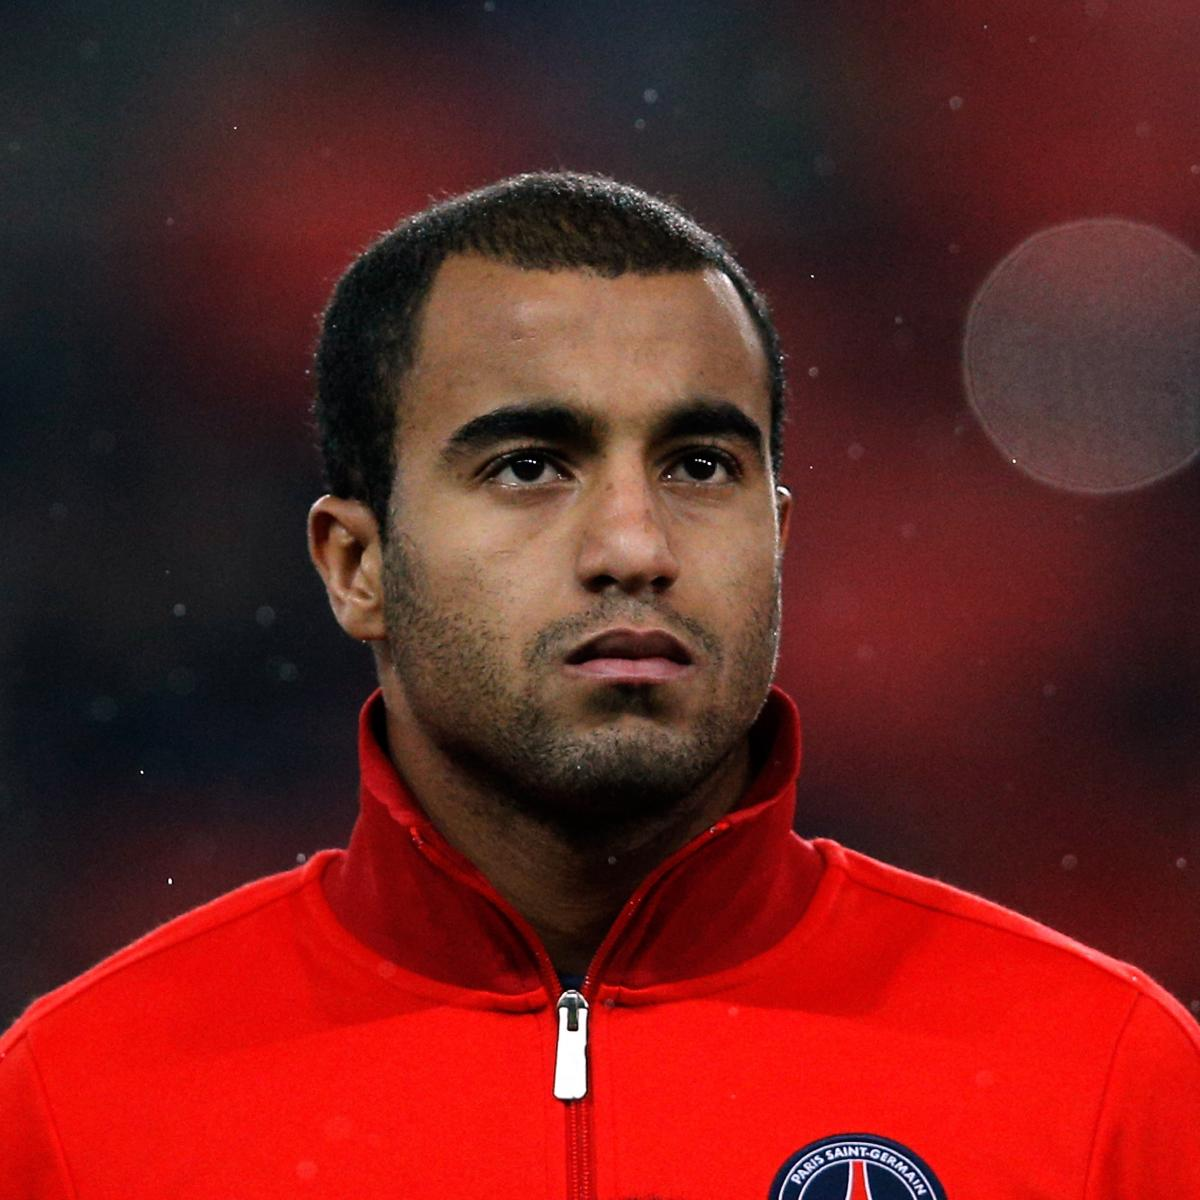 Lucas Moura To Psg Price: Is Lucas Moura A Flop At PSG, Or Are Ugly Win Tactics